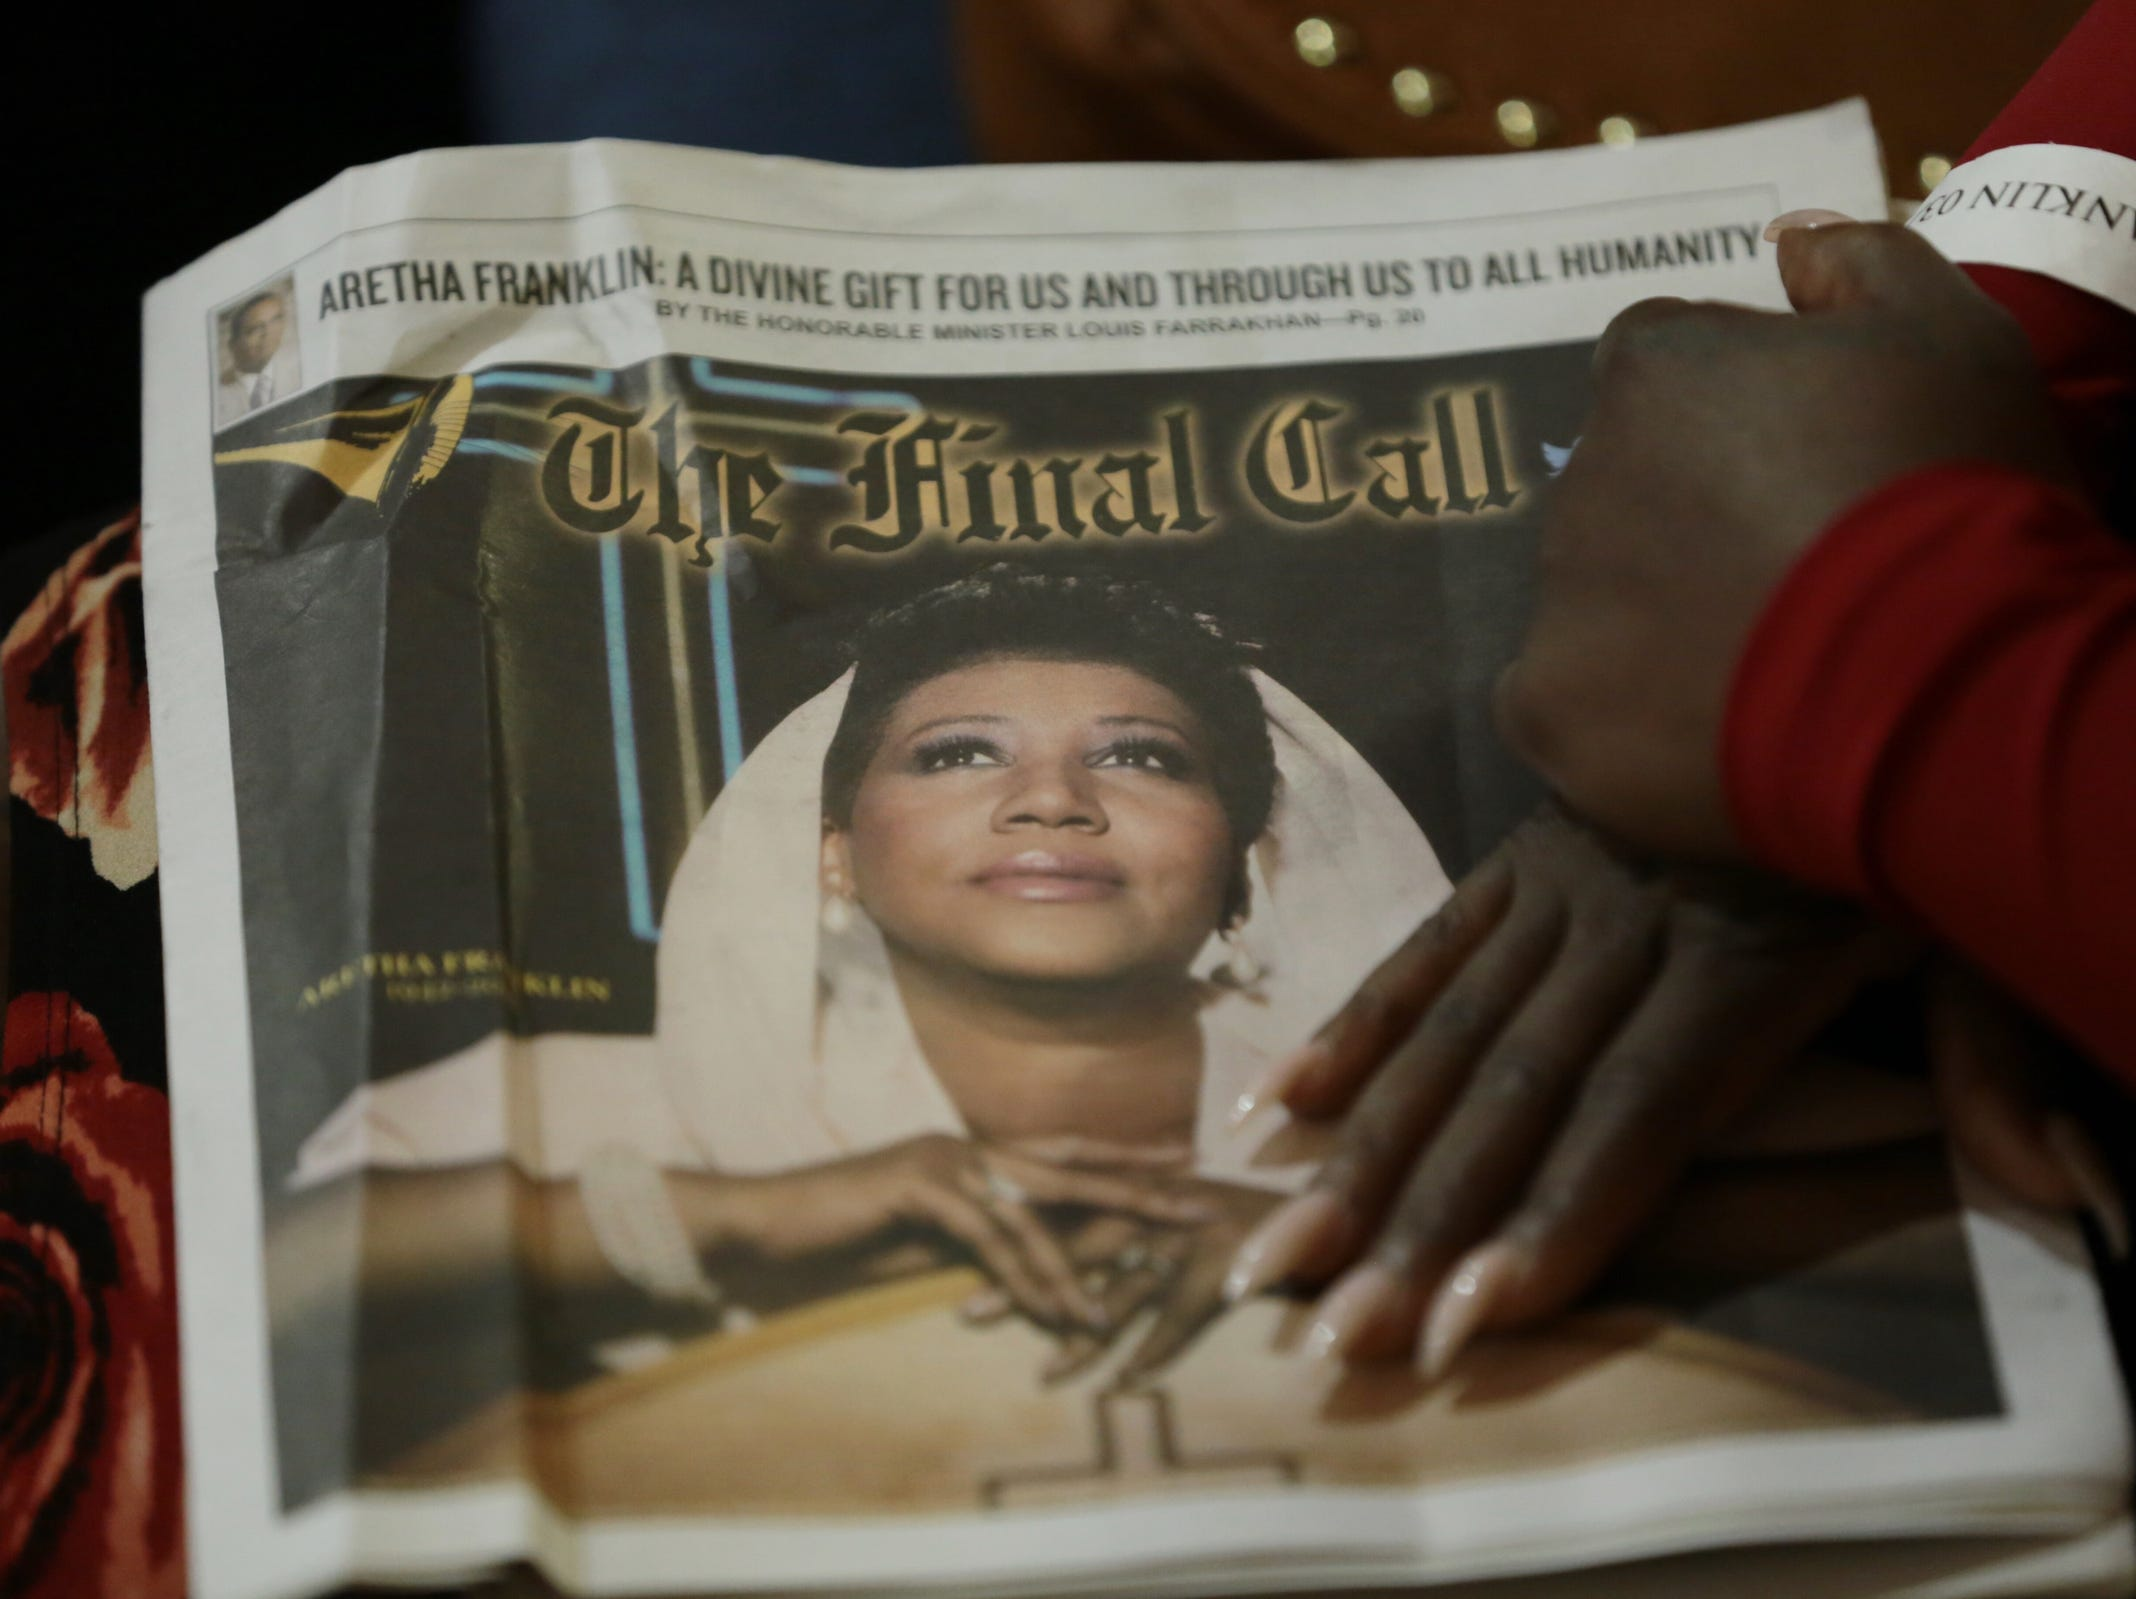 Attendees hold memorabilia during the funeral for the late Aretha Franklin at Greater Grace Temple in Detroit on Friday, August 31, 2018.